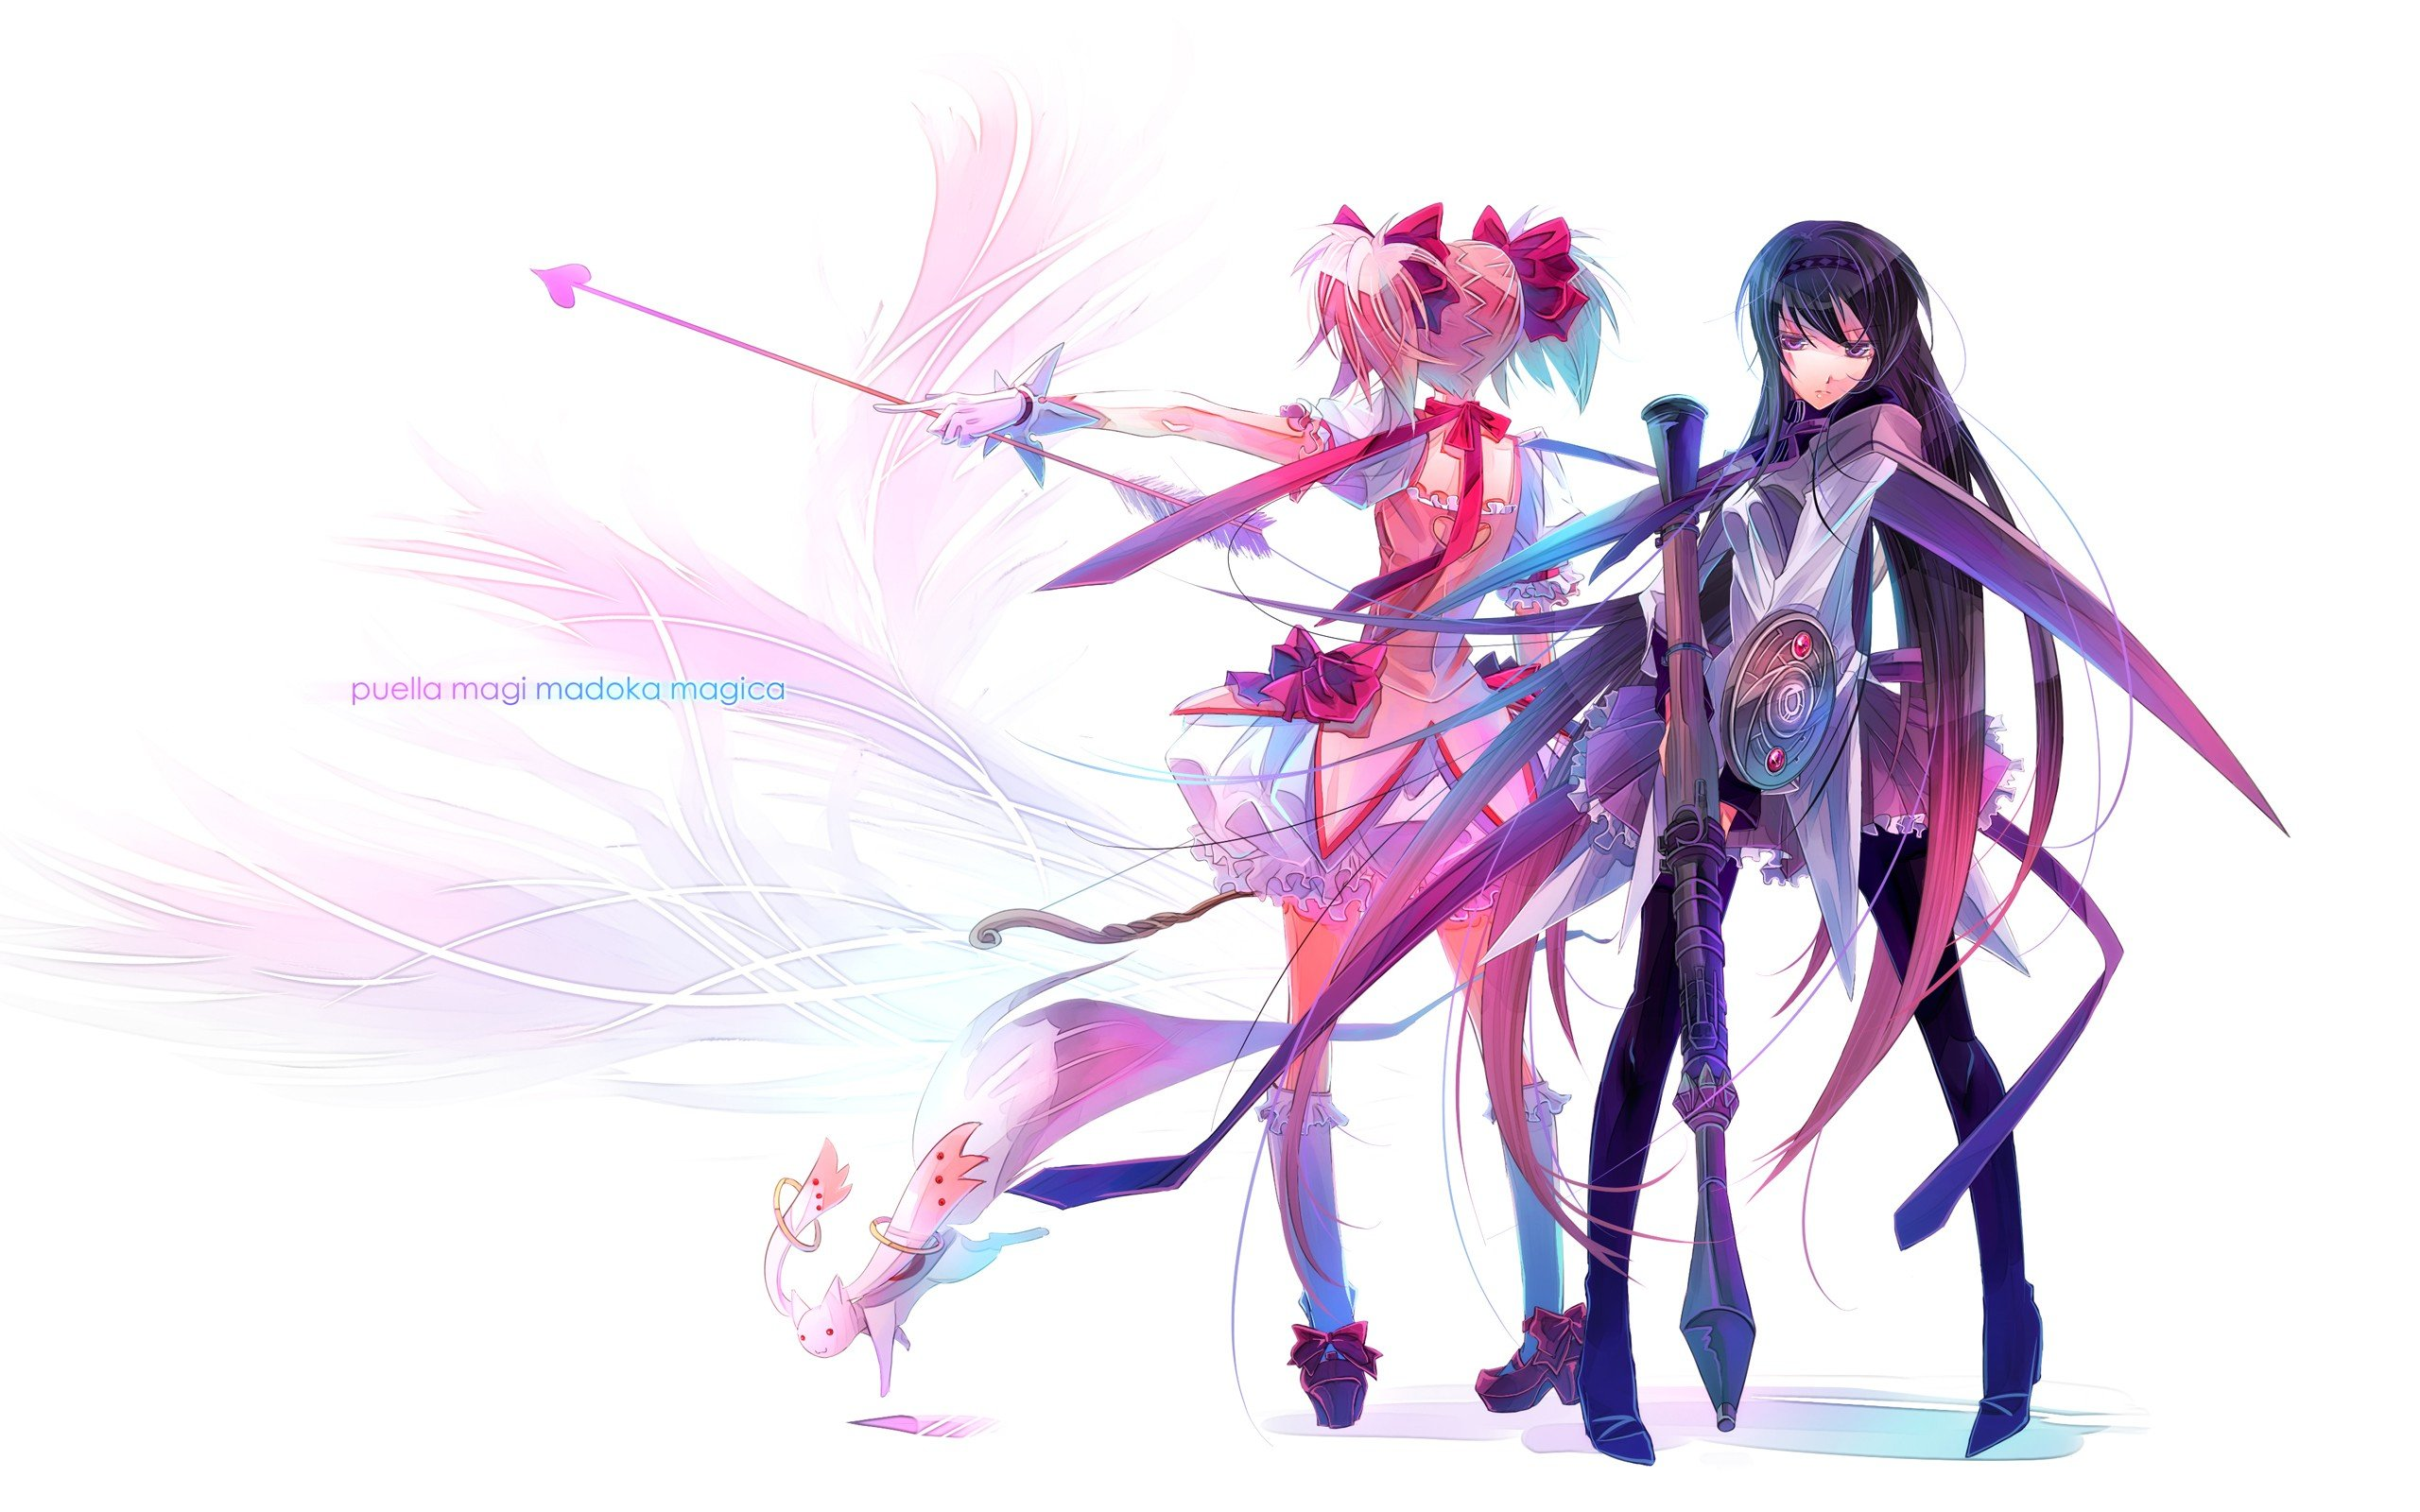 White skirts weapons mizore artist purple hair pink hair - Anime girl with weapon ...